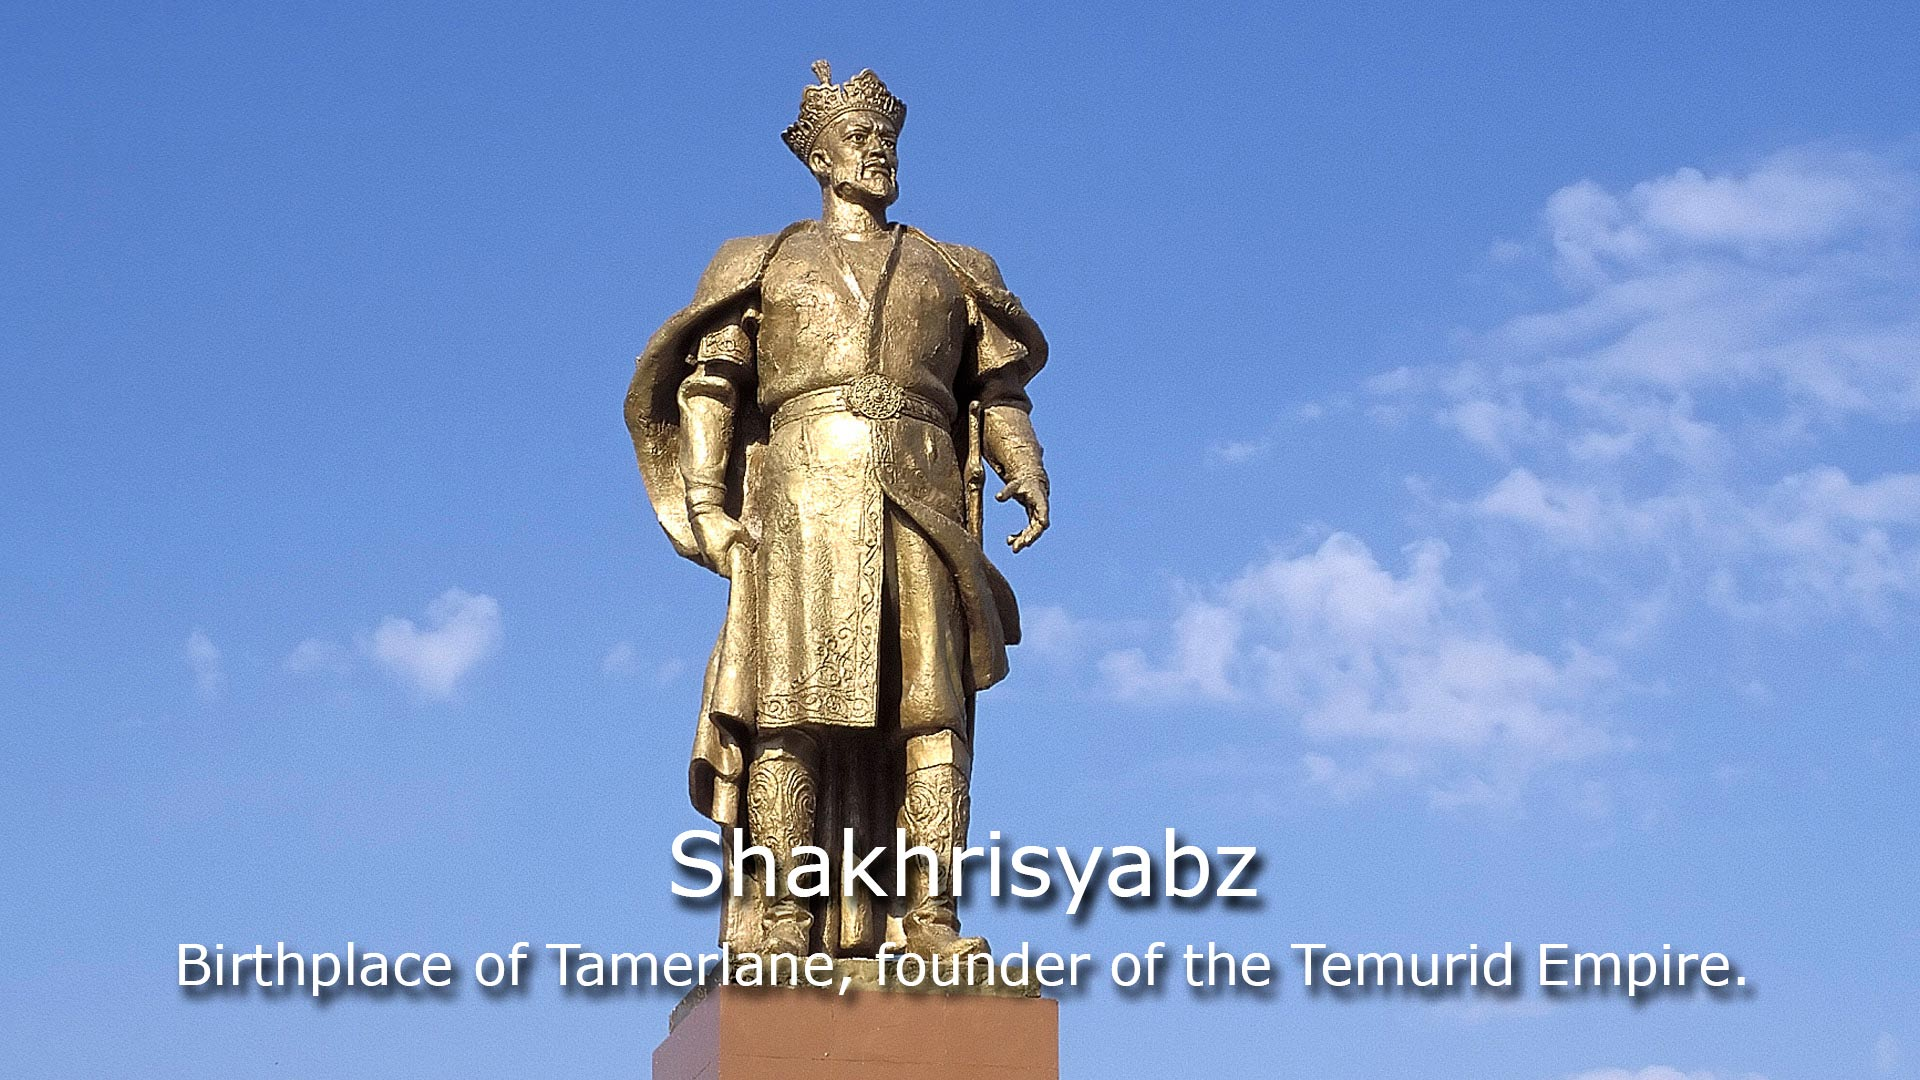 Shakhrisyz - Birthplace of Tamerlane, founder of the Temurid Empire